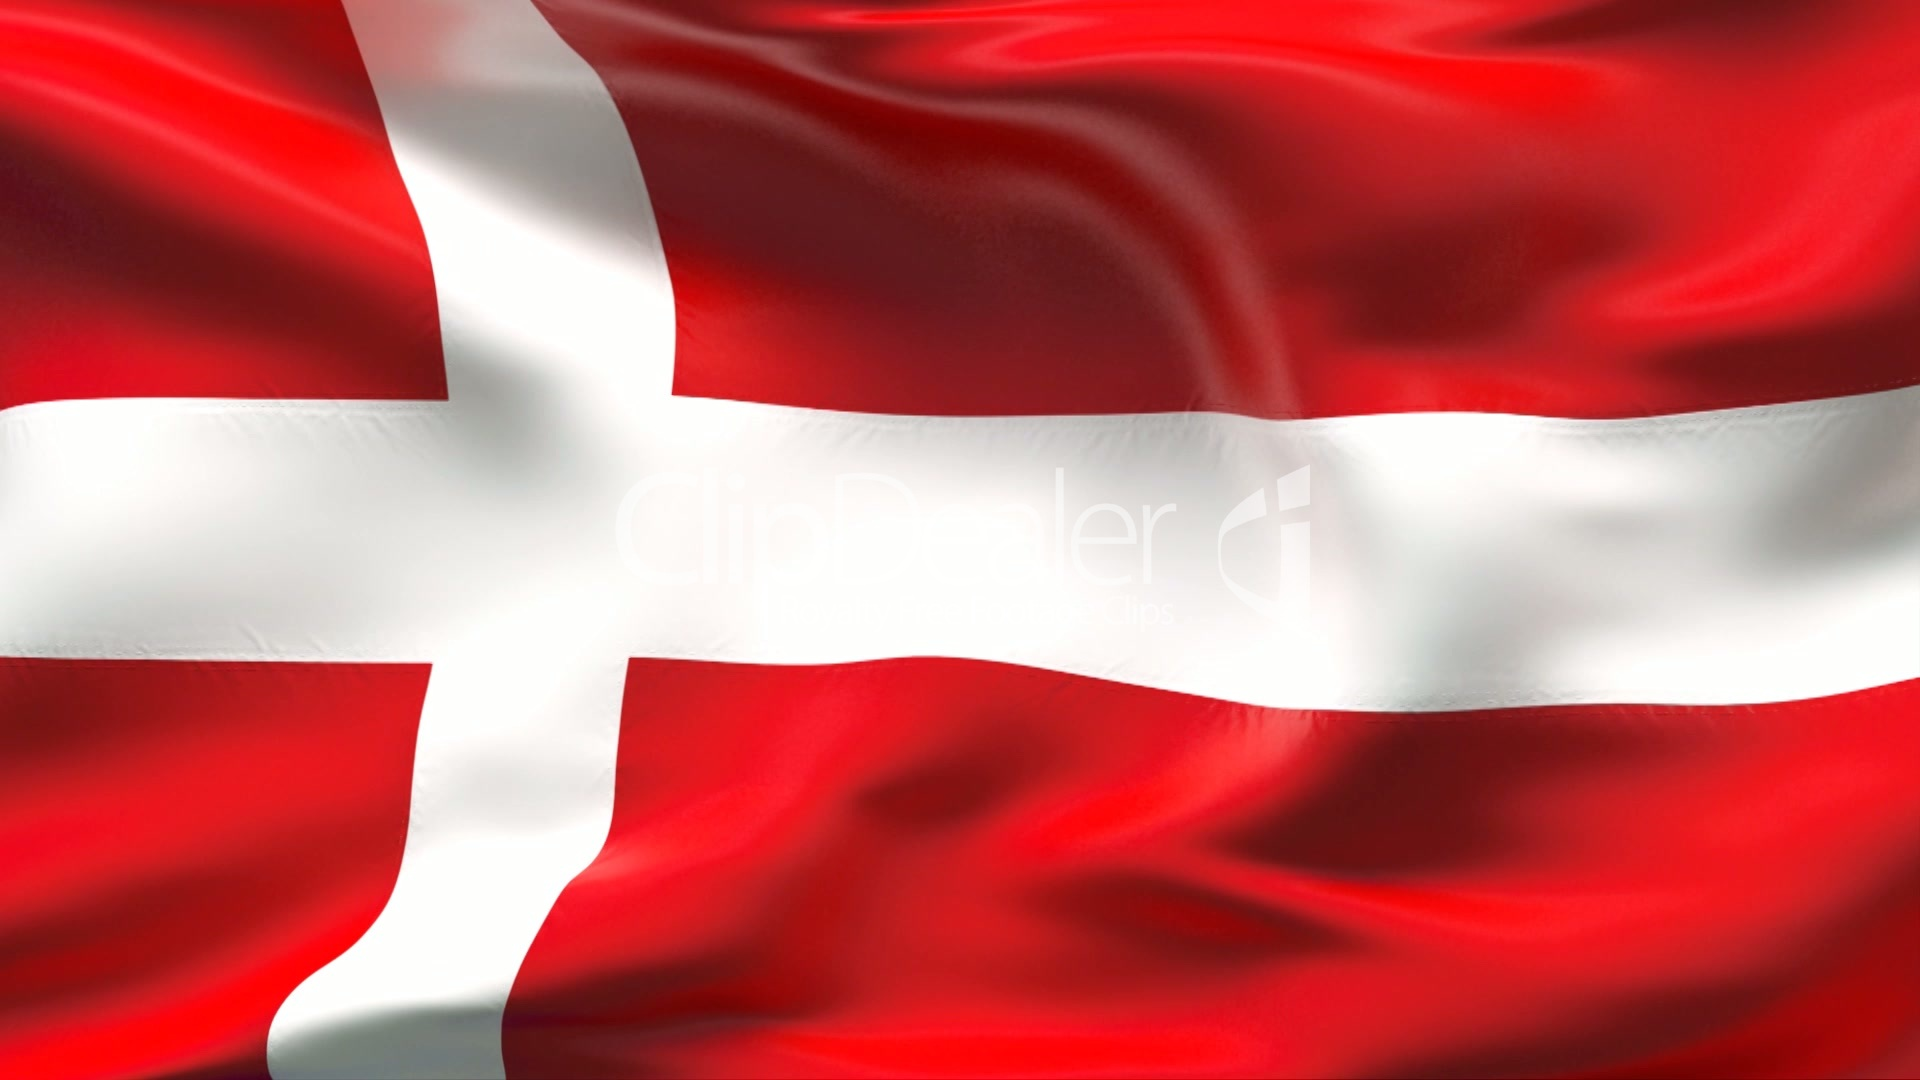 Danish Flags (Denmark) from The World Flag Database